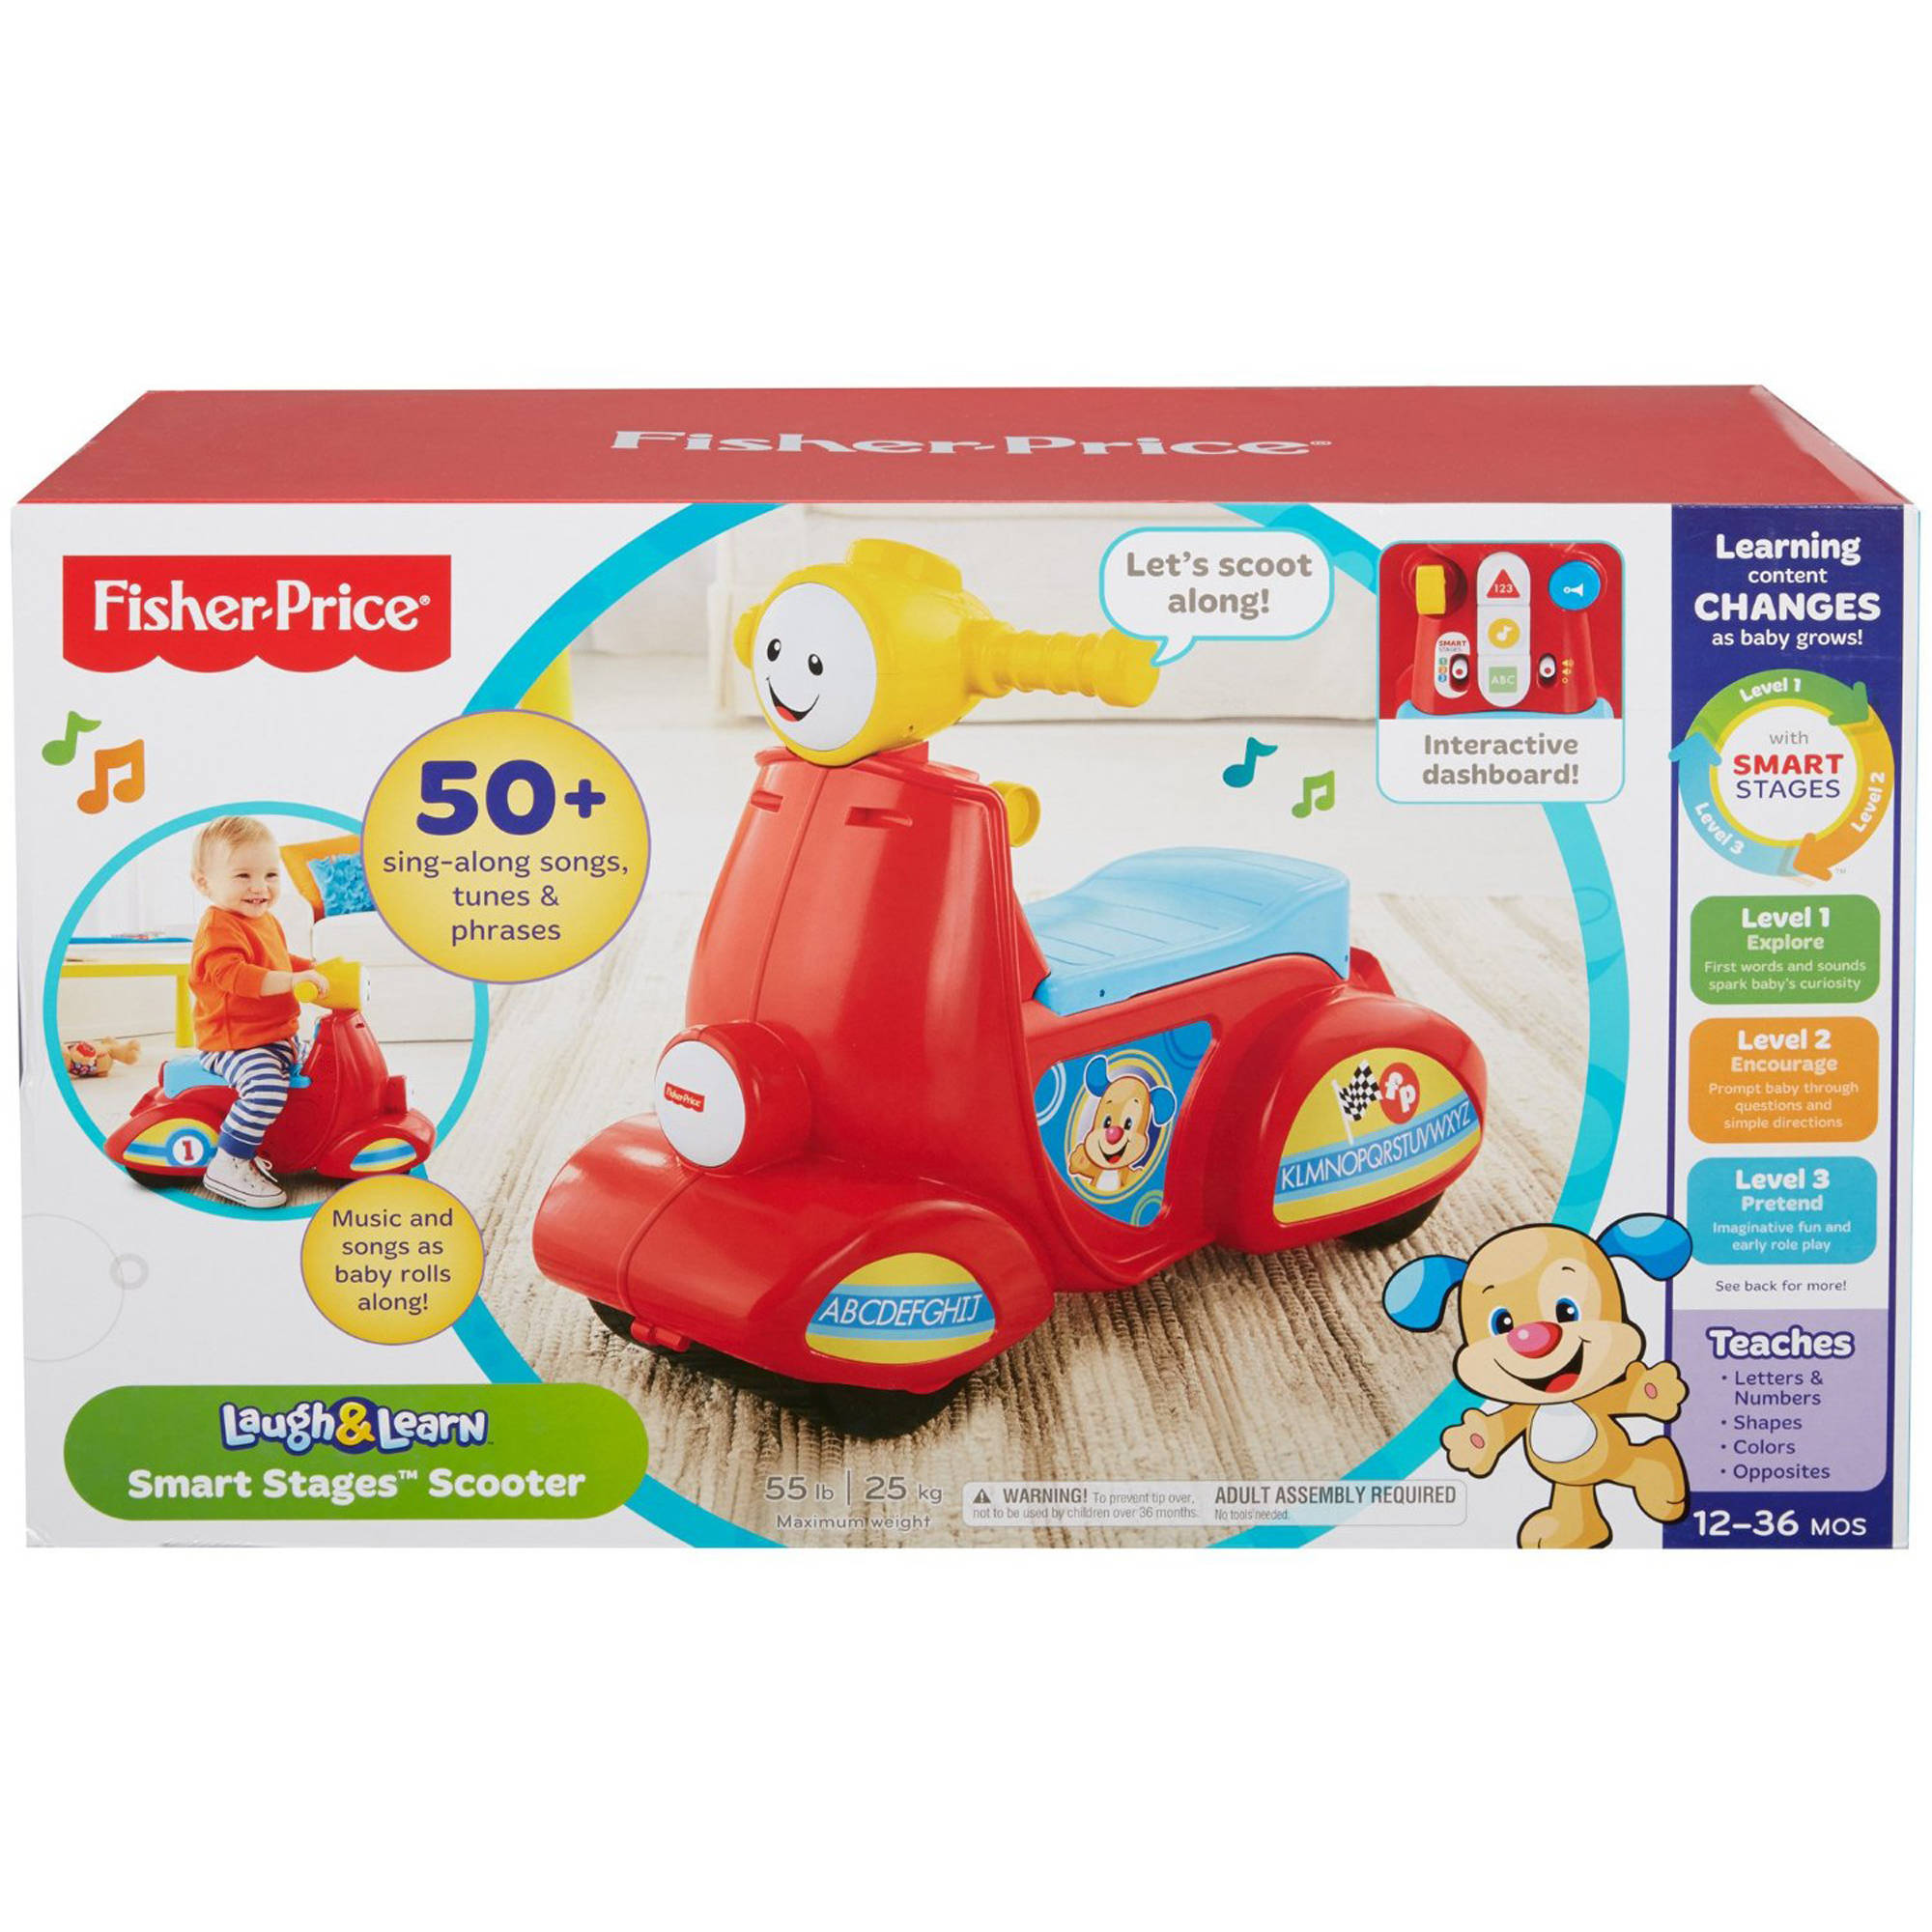 Ride On Toys For Girls Toddlers Riding 1 Year Old Gifts 2 -3140